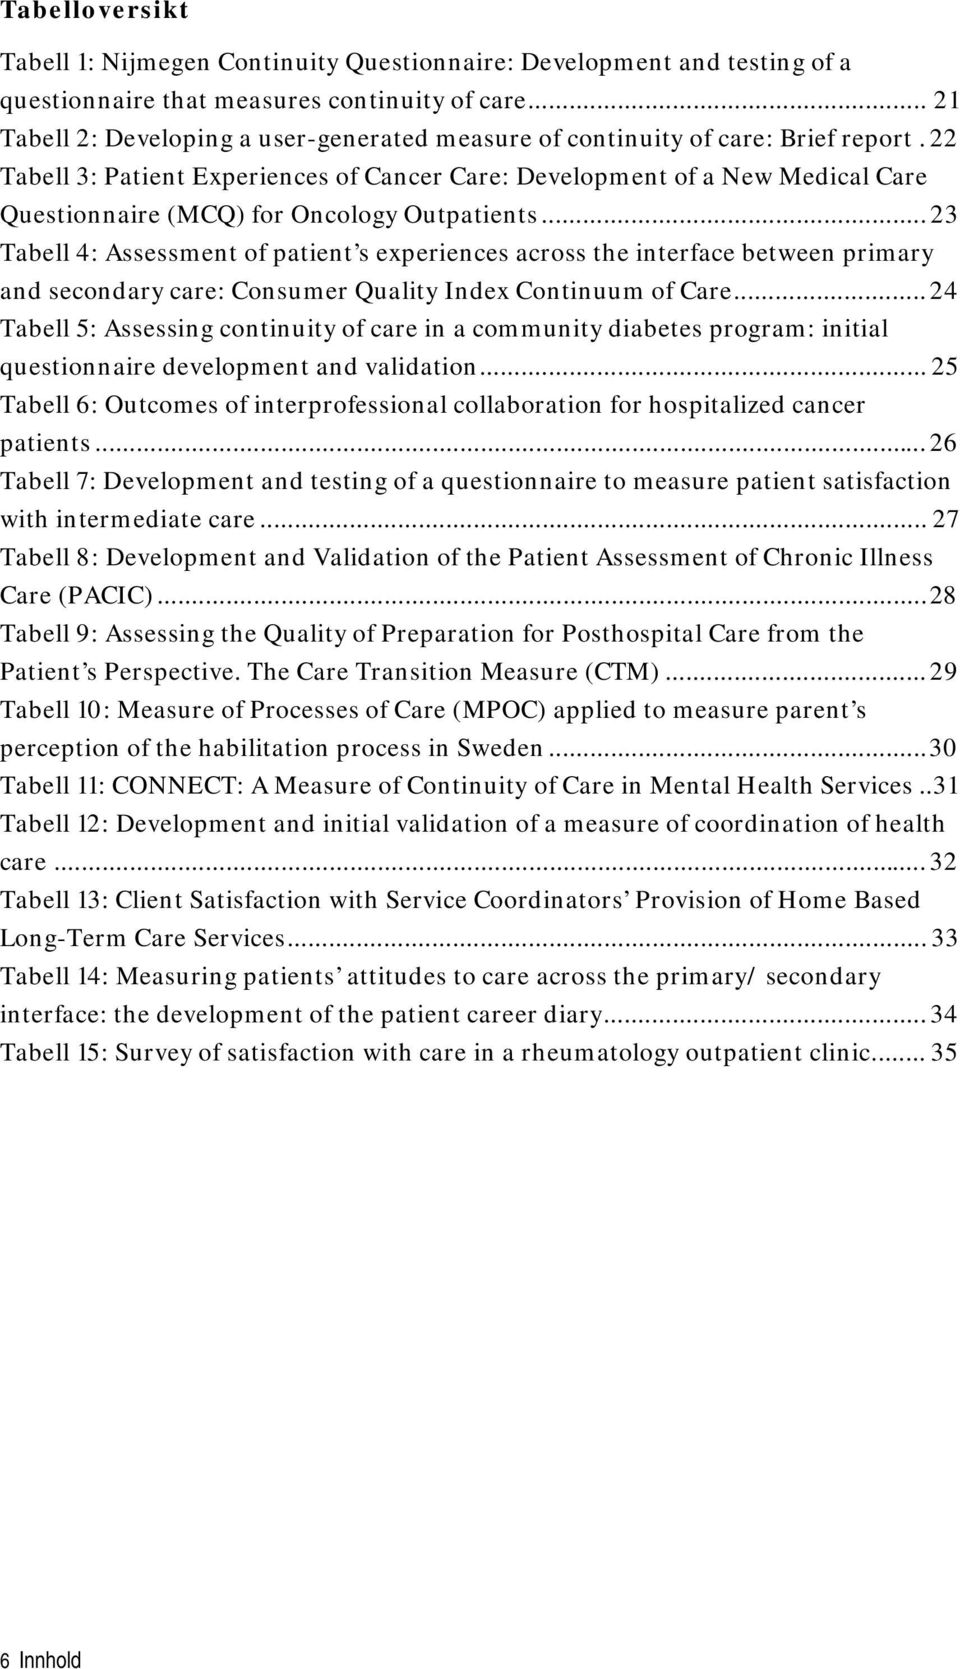 22 Tabell 3: Patient Experiences of Cancer Care: Development of a New Medical Care Questionnaire (MCQ) for Oncology Outpatients.